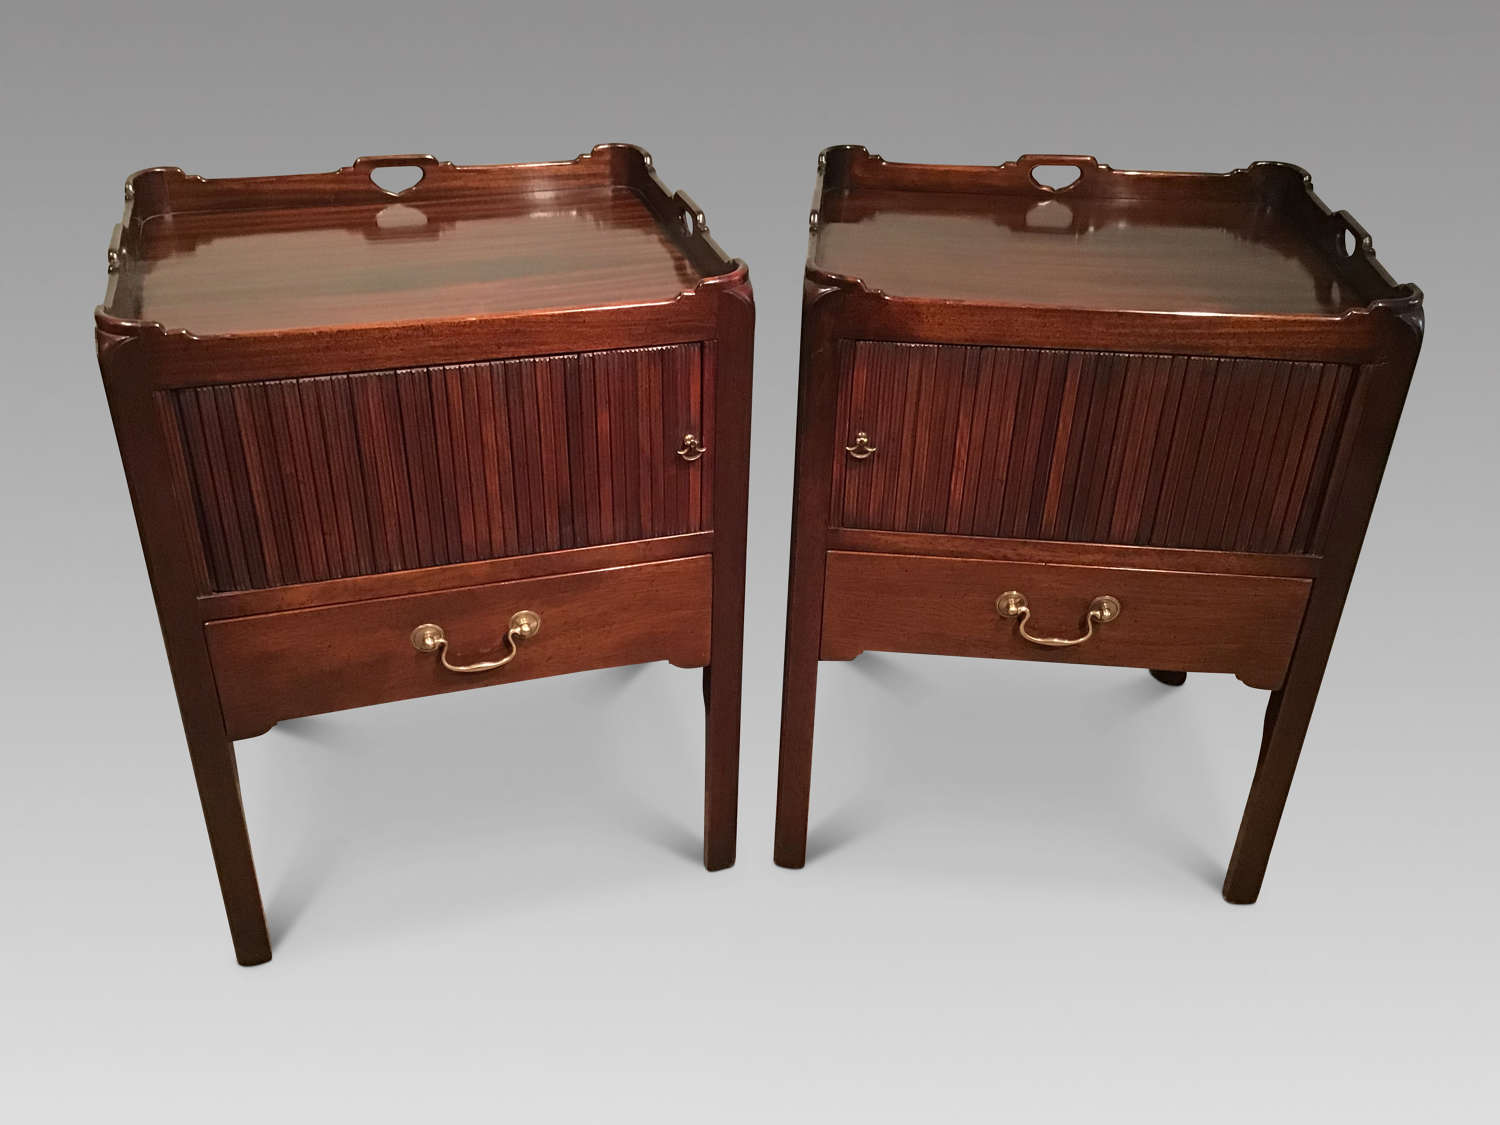 Pair of Georgian style mahogany bedside cabinets